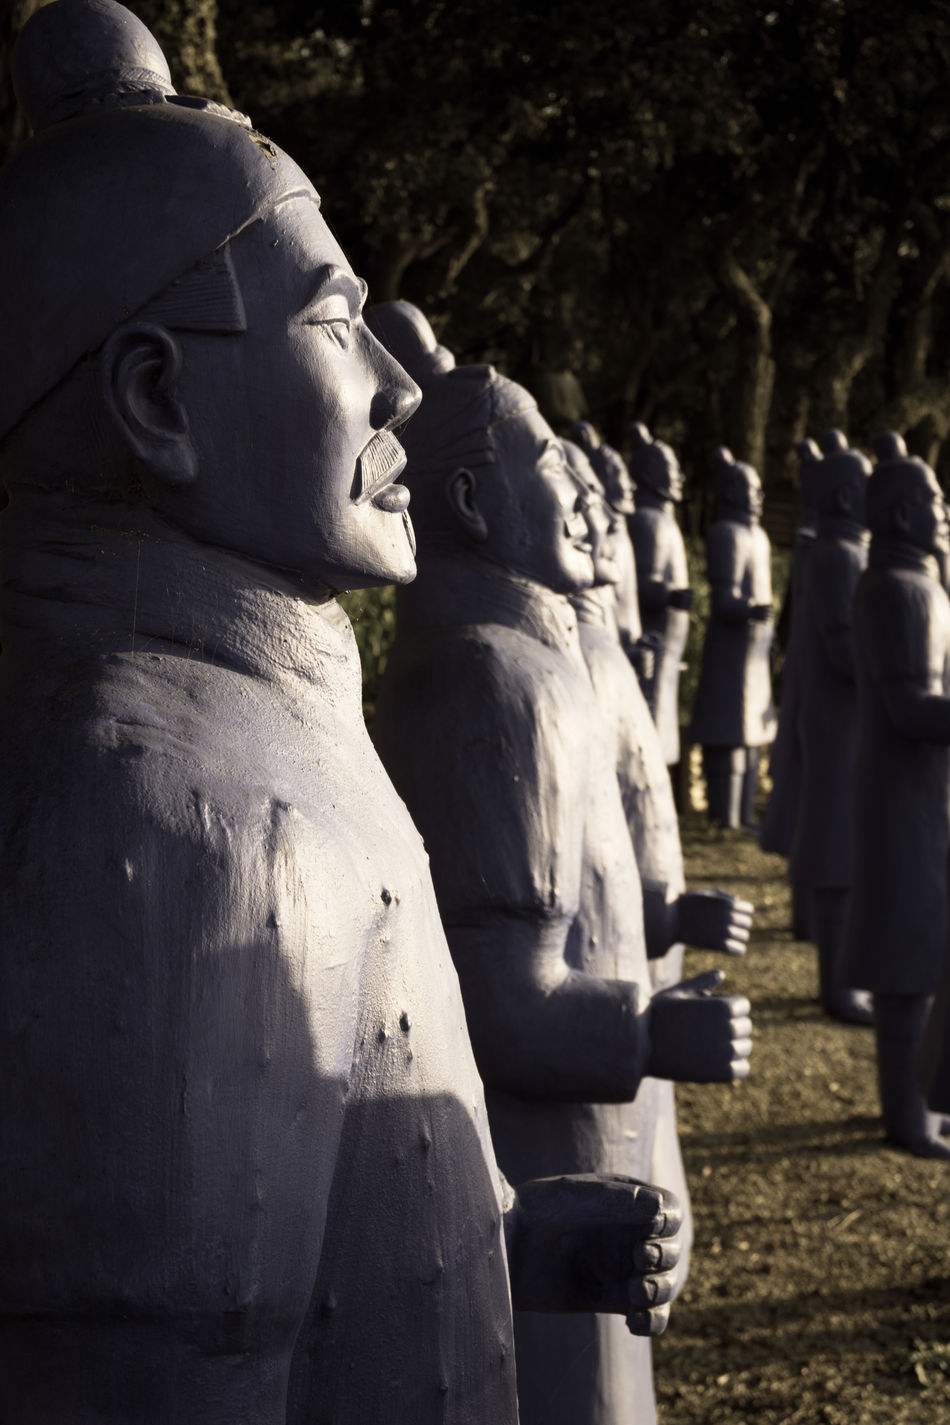 Buddha Buddha Eden Close-up Day Human Representation Male Likeness Nasmgraphia No People Outdoors Place Of Worship Portugal Religion Sculpture Spirituality Statue Terracotta Terracotta Warriors Travel Destinations Traveling